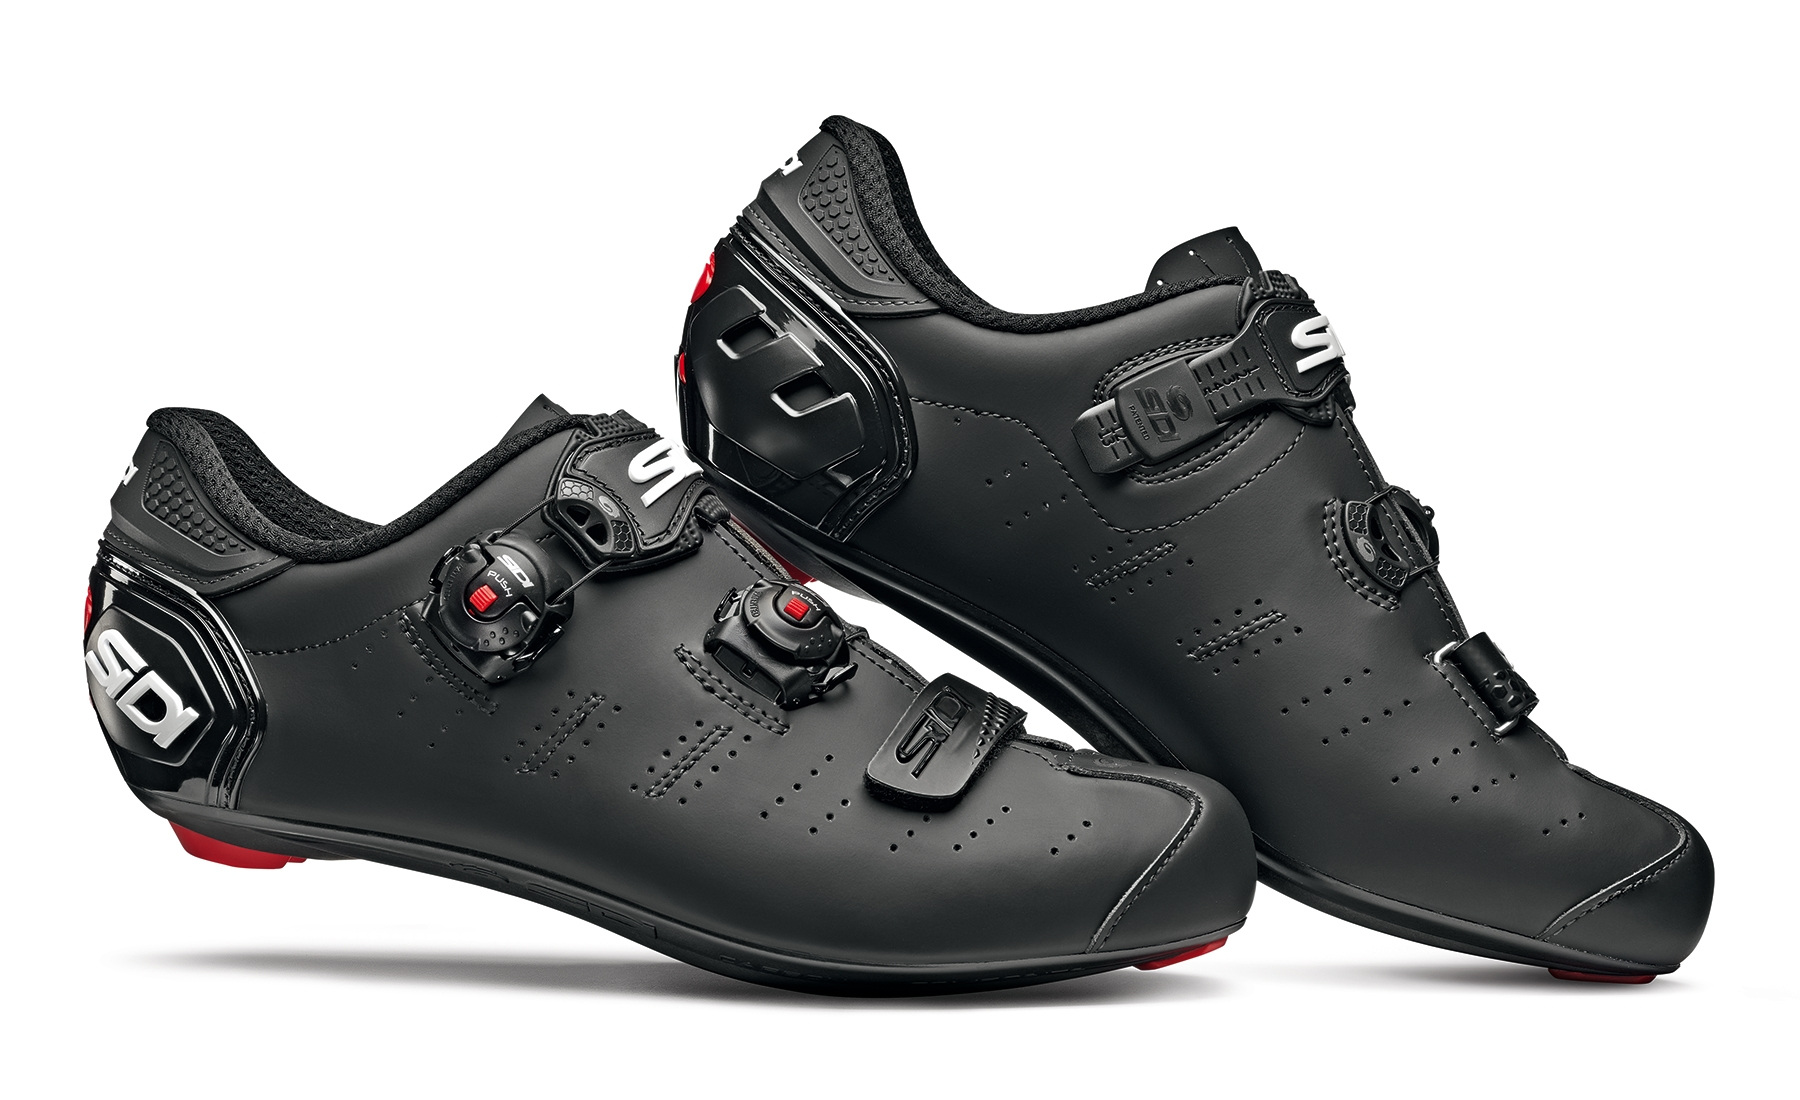 Sidi Ergo 5 Mega Matt Road Shoes (Wide Fit) | Shoes and overlays